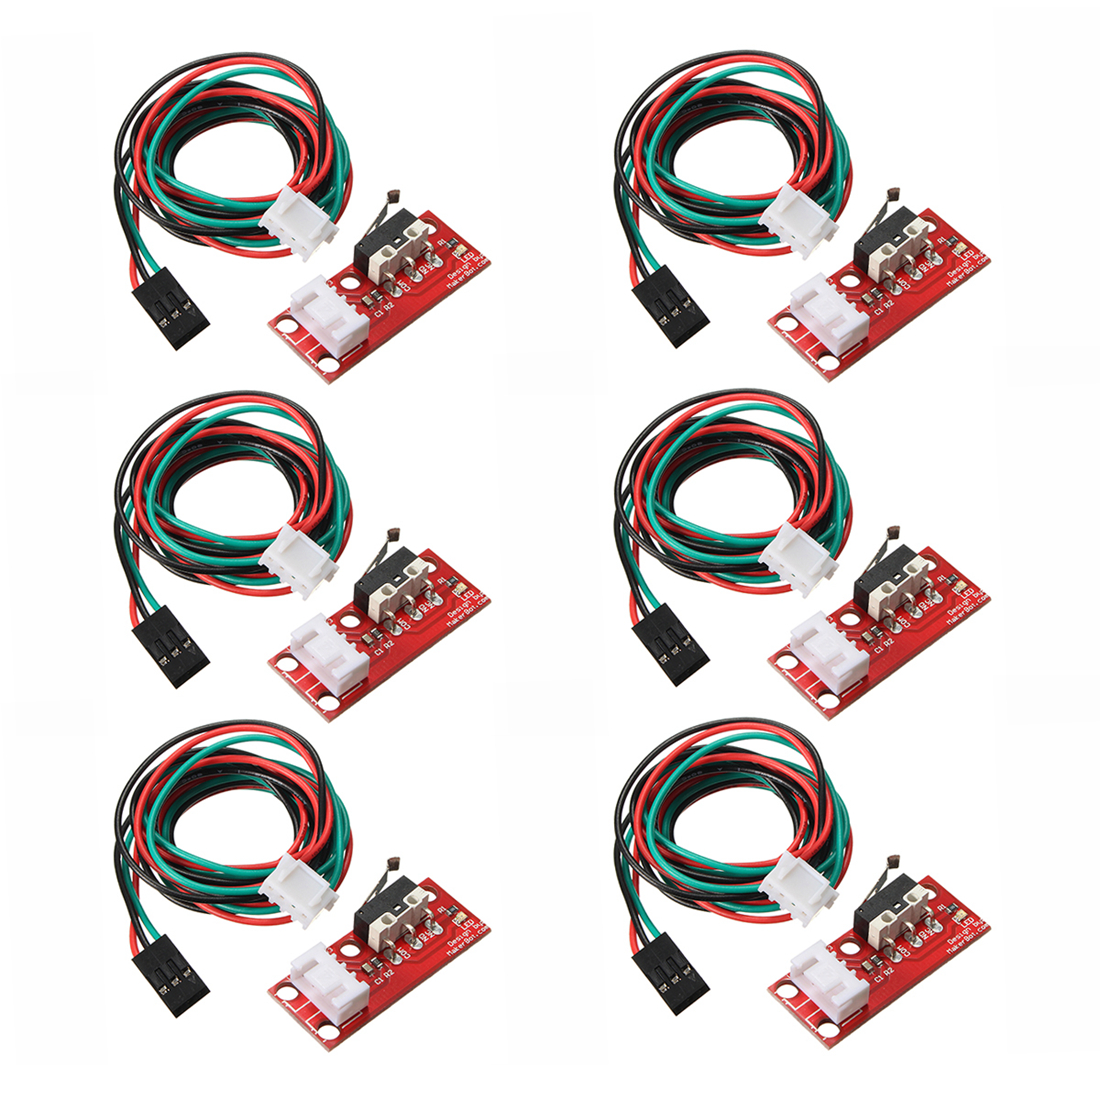 Optical Endstop Optical Limit Switch for 3D Printers RAMPS 1.4 U1Q9